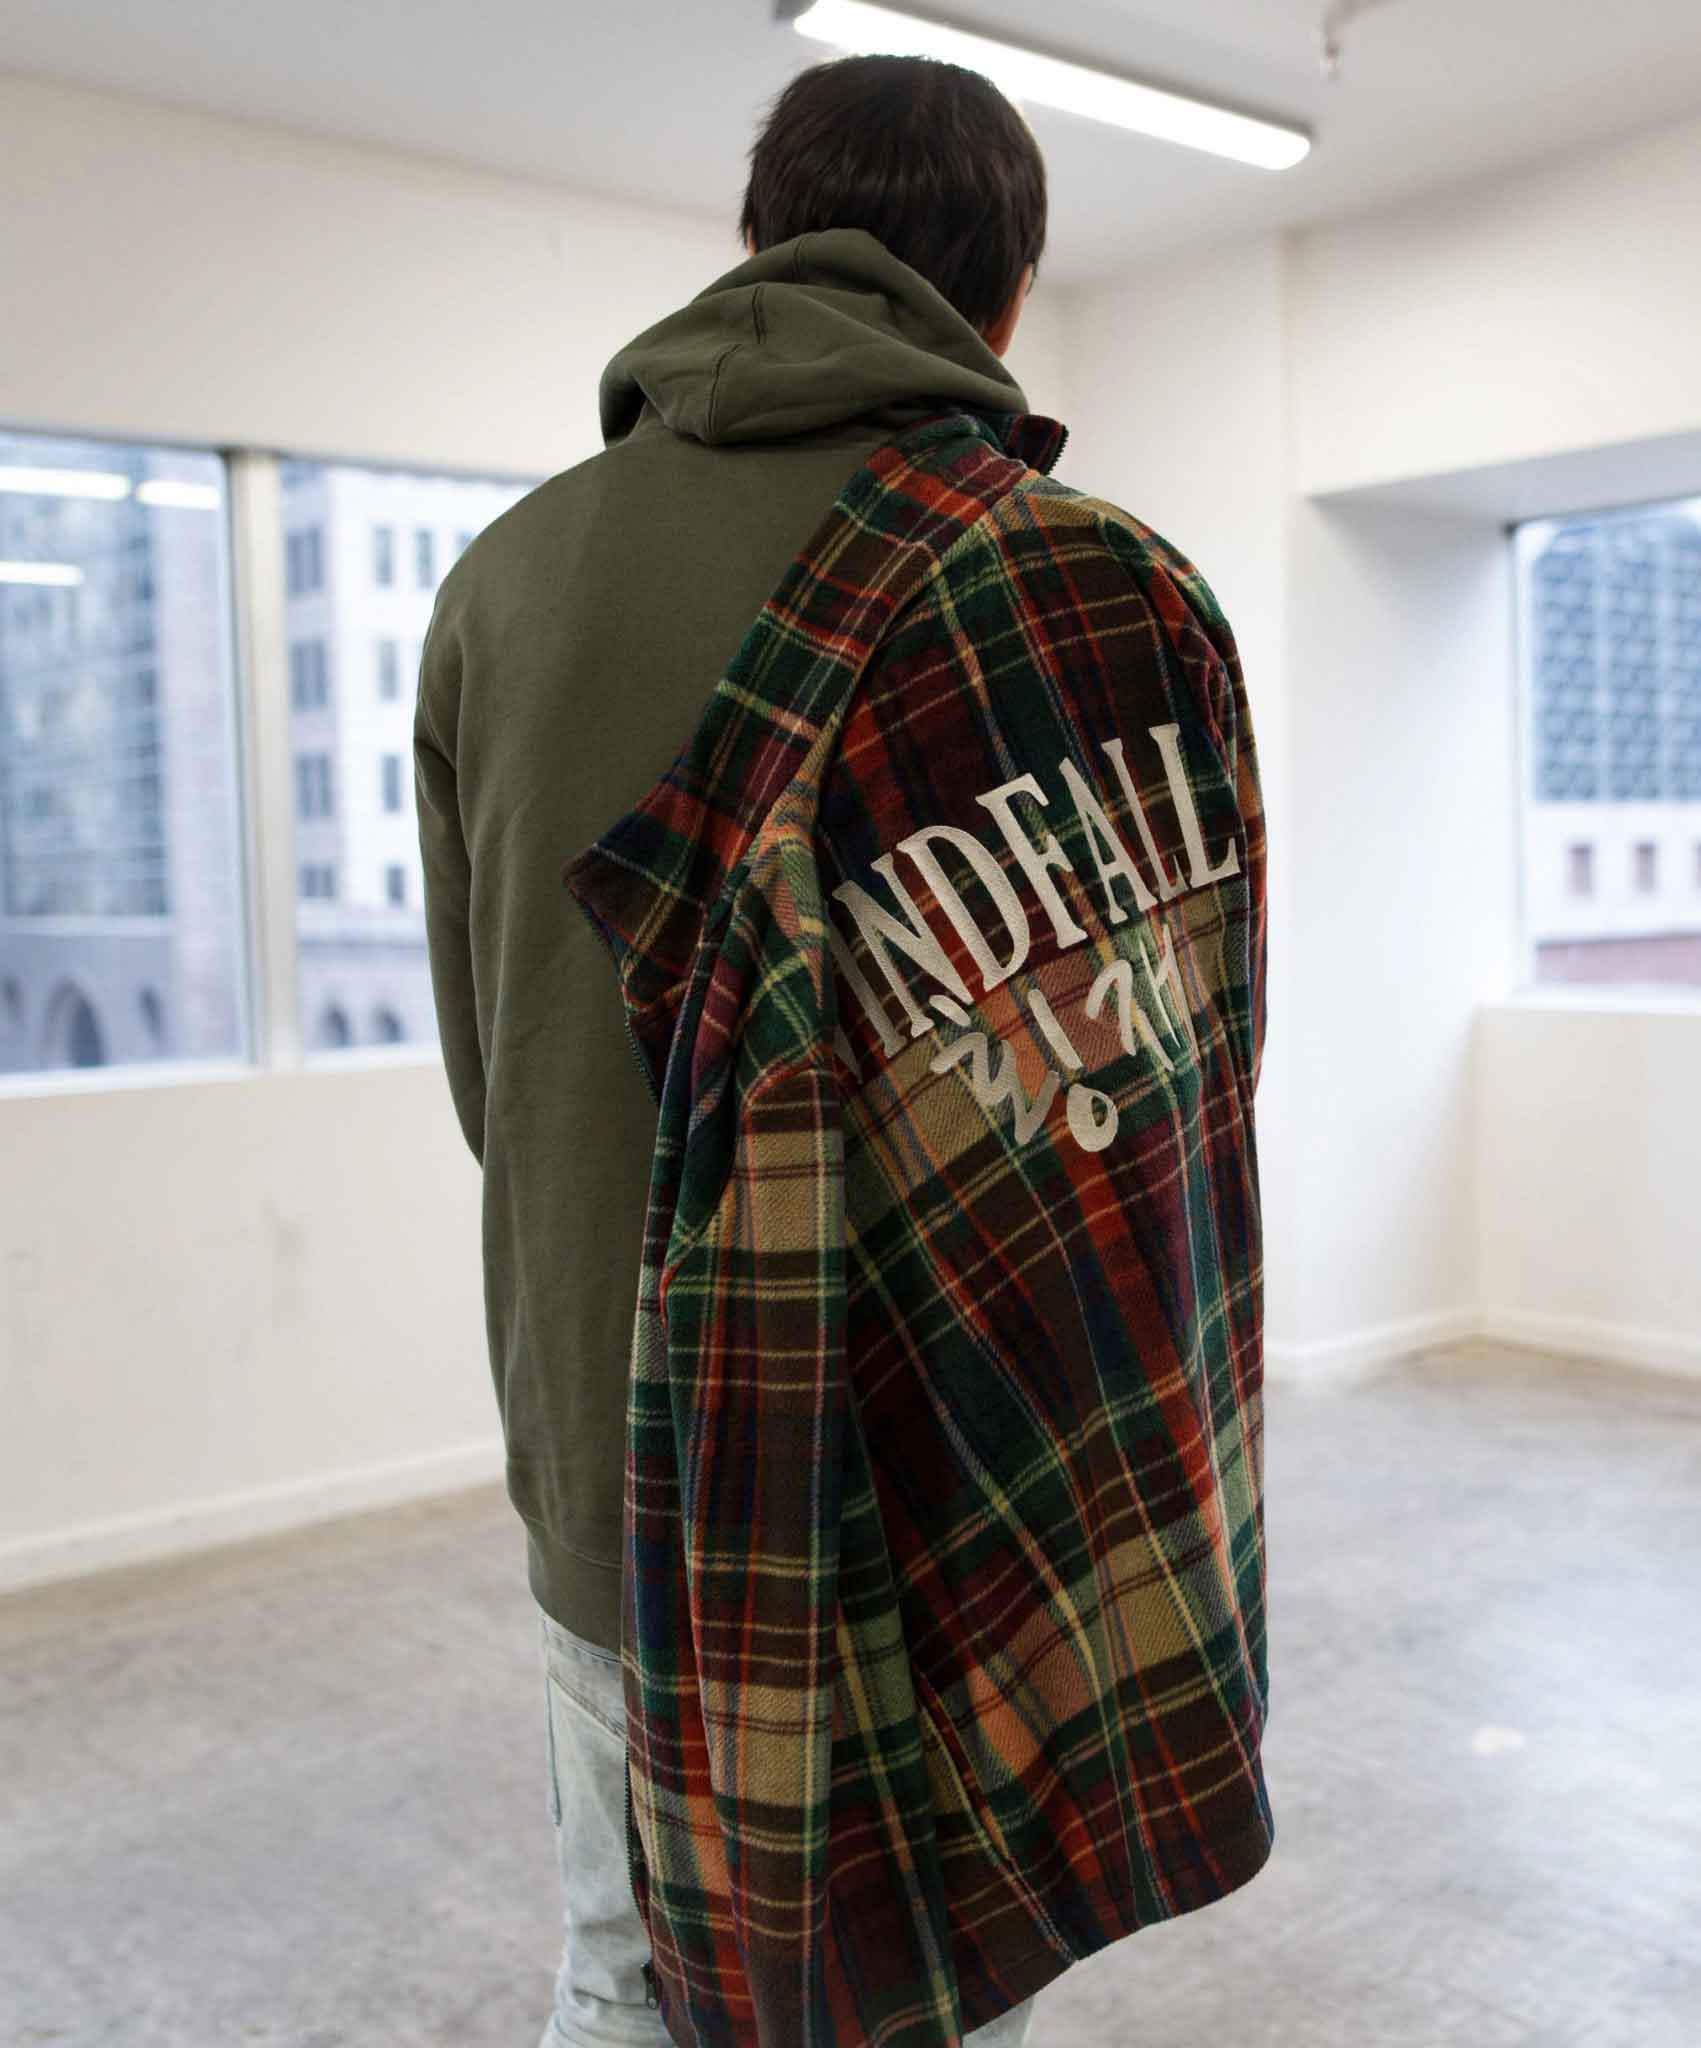 windfall-clothing-what-is-streetwear » WINDFALL 횡재 77009ecf0eb